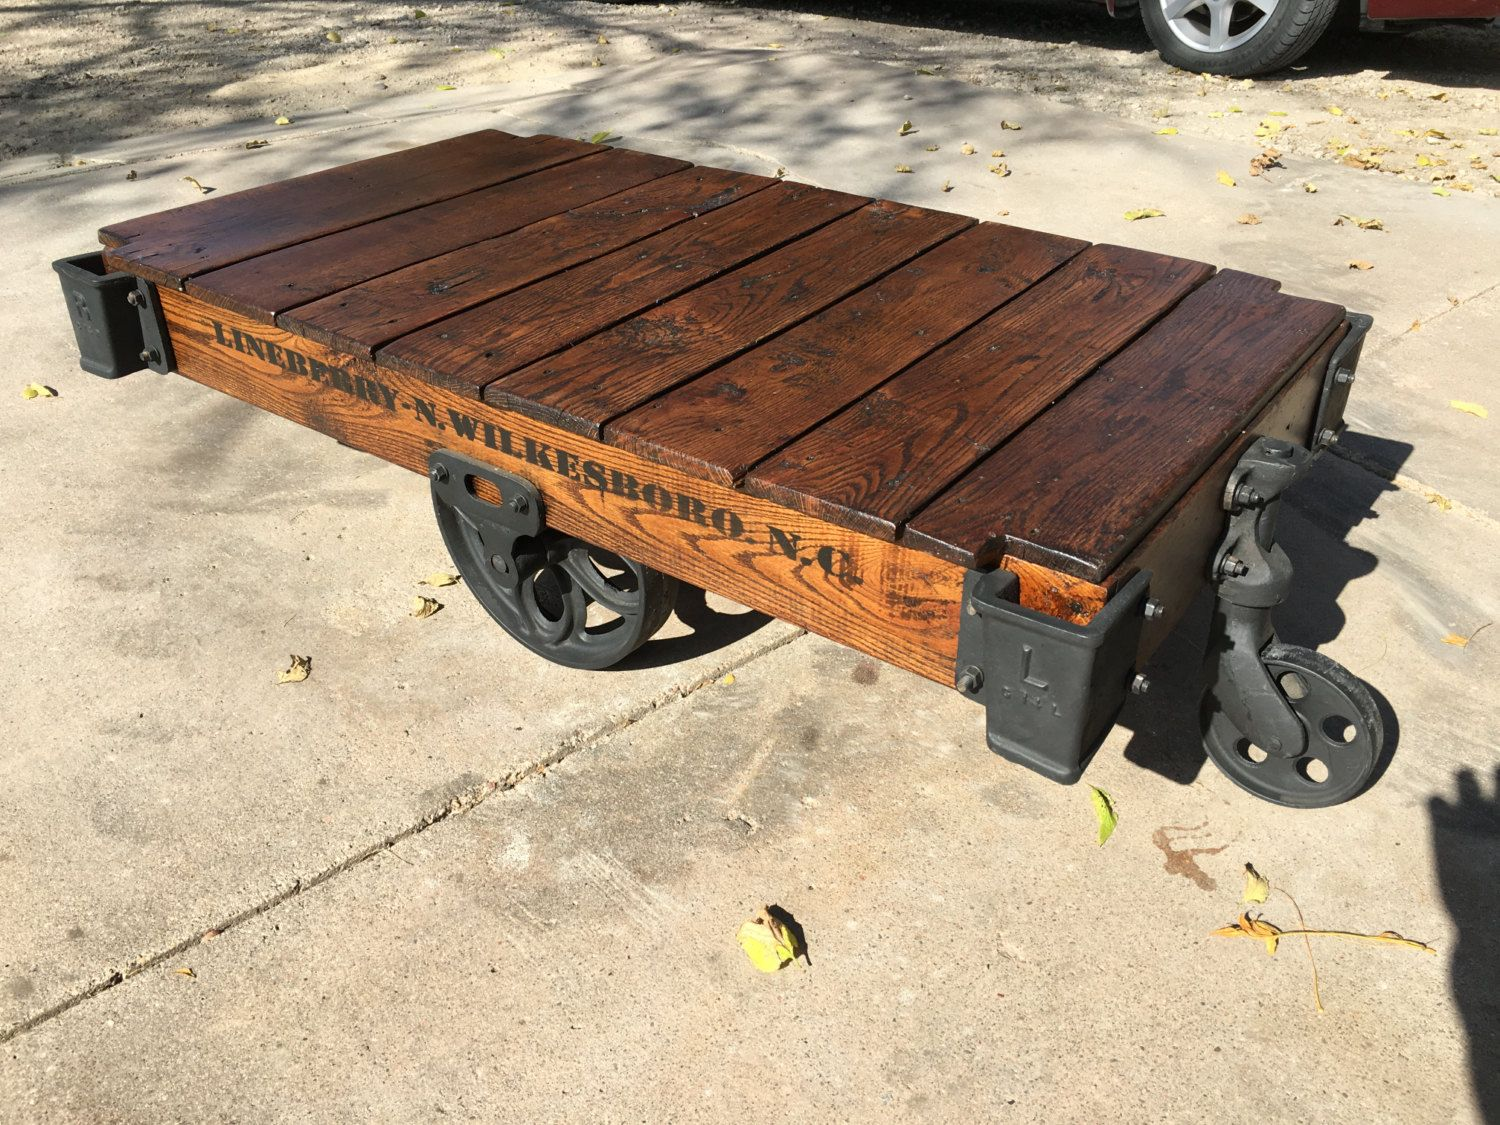 Lineberry Factory Cart Railroad Cart Coffee Table By